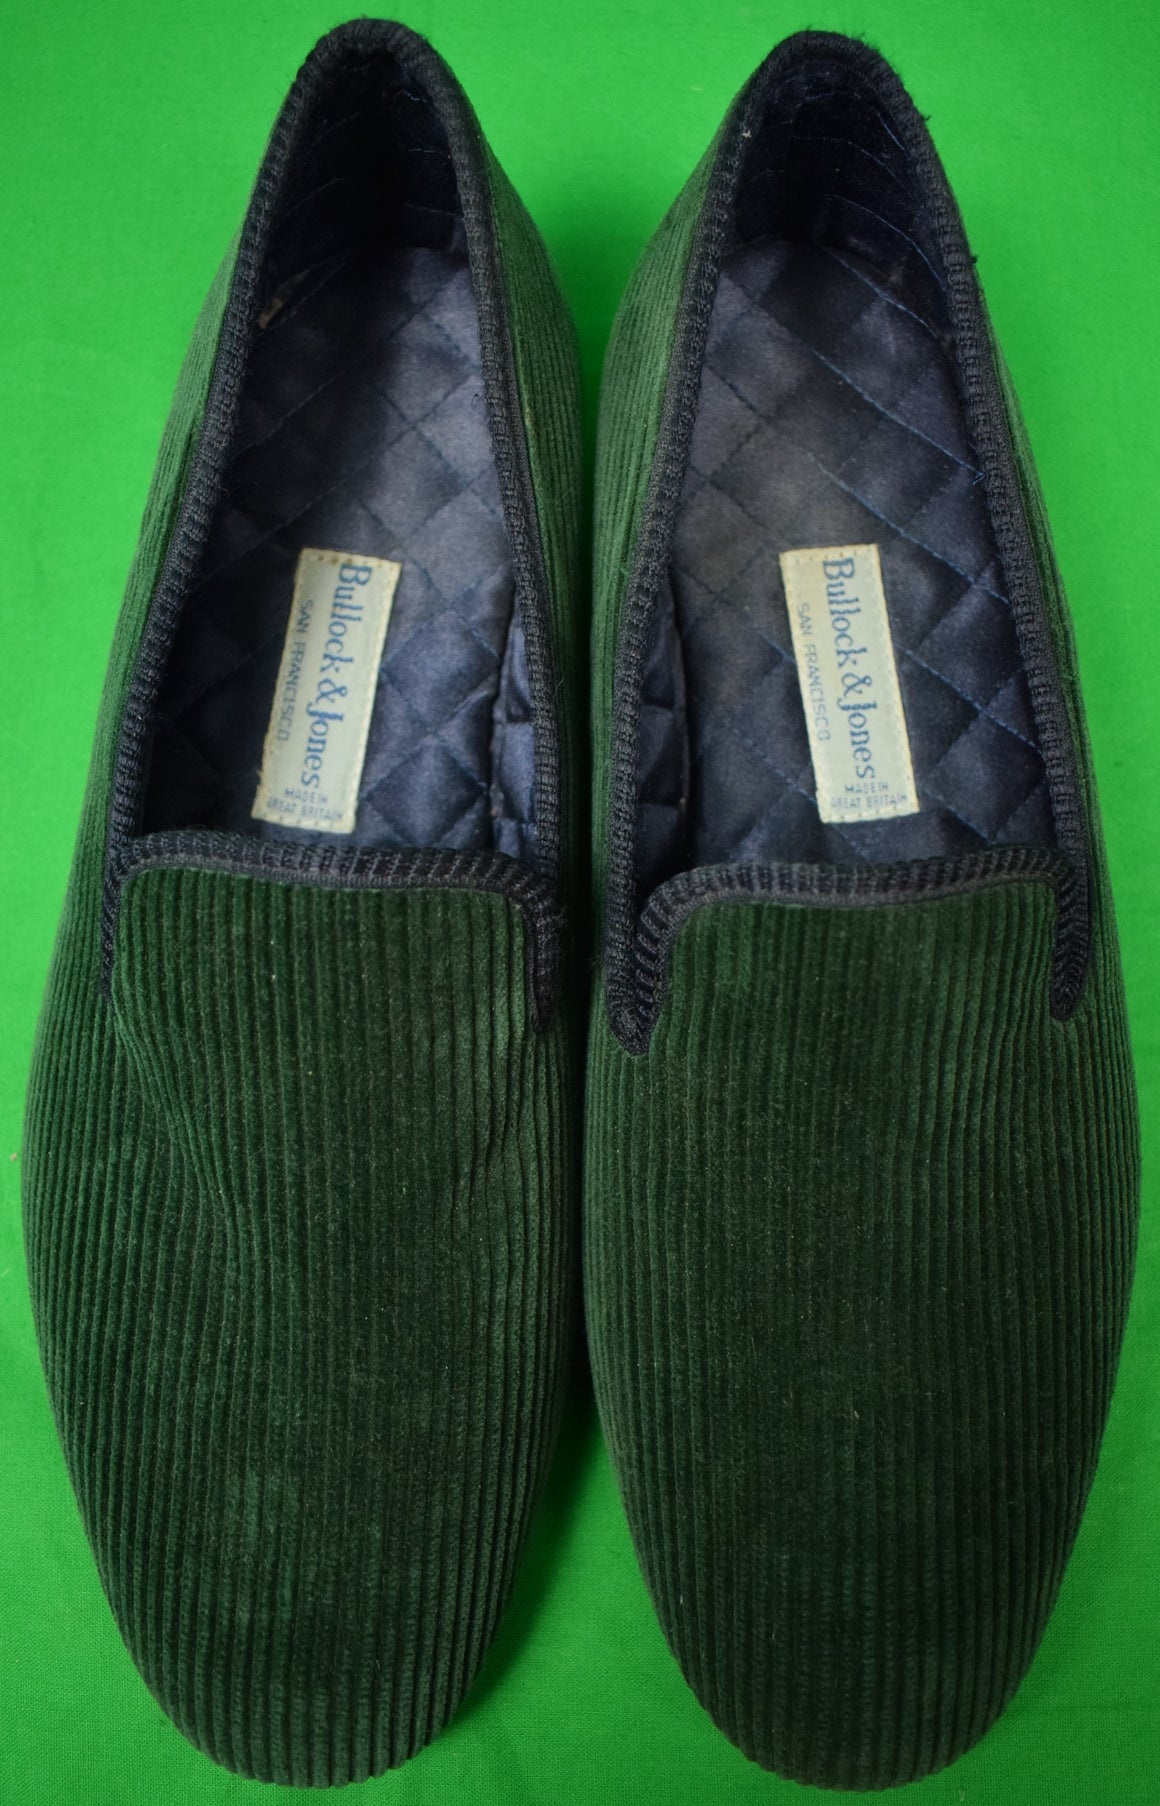 Bullock & Jones Green Corduroy English Slippers Sz 10-1/2""